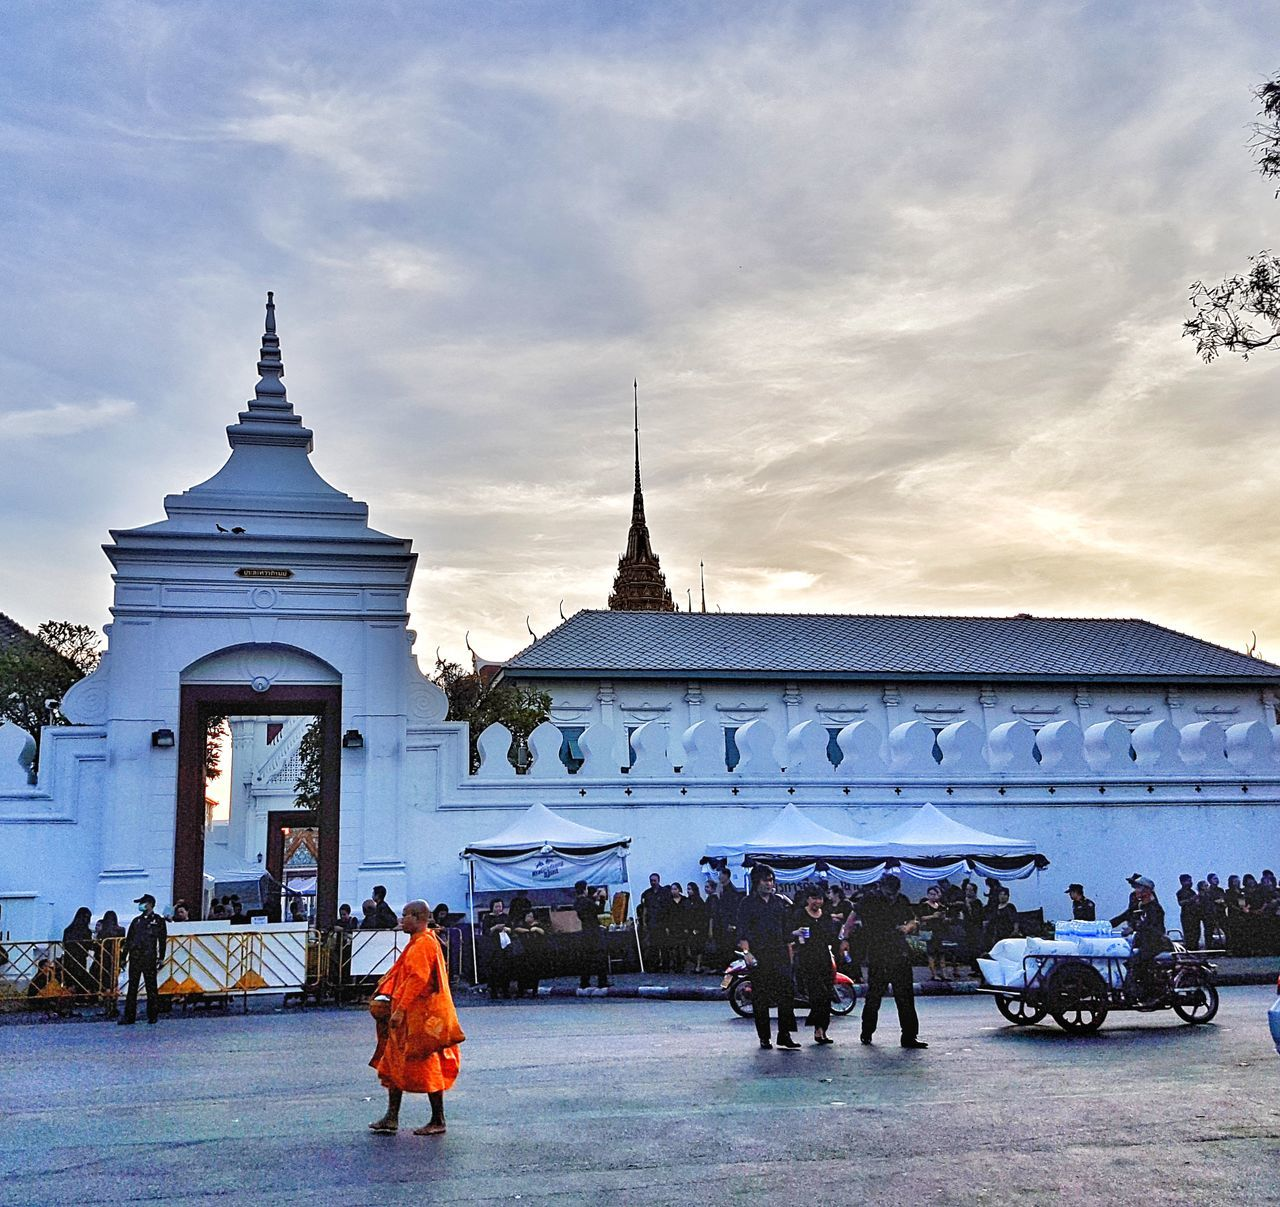 Thailand Grand Palace Bangkok Thailand Monk  Sky And Clouds People Sadness Cultures Outdoors